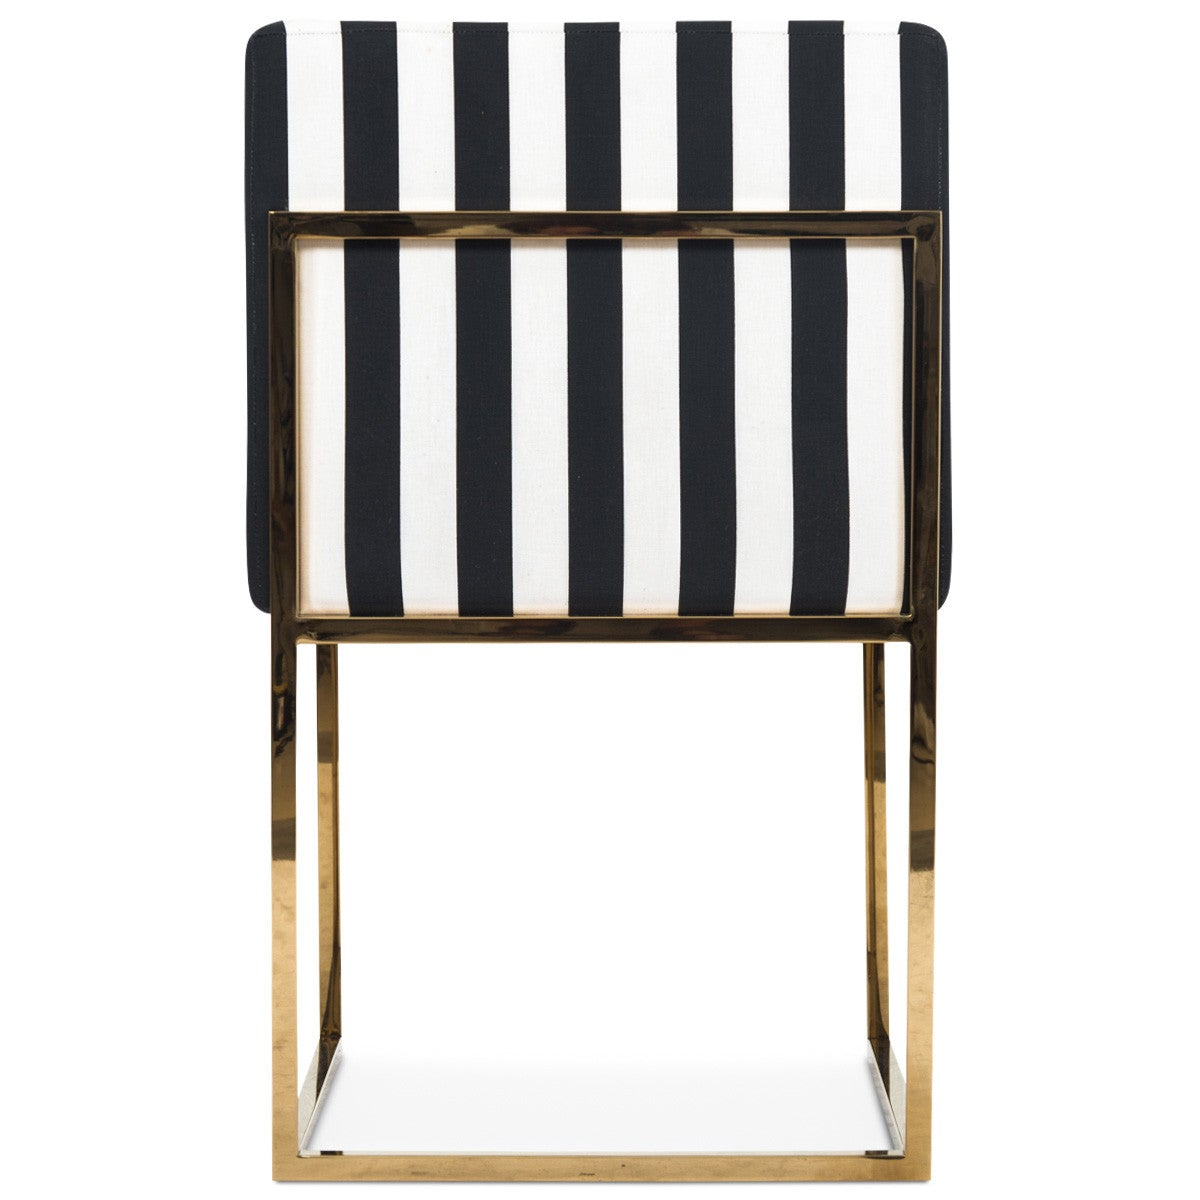 007 Dining Chair in Black and White Stripes - Modern Black And White Striped Dining Chair - ModShop